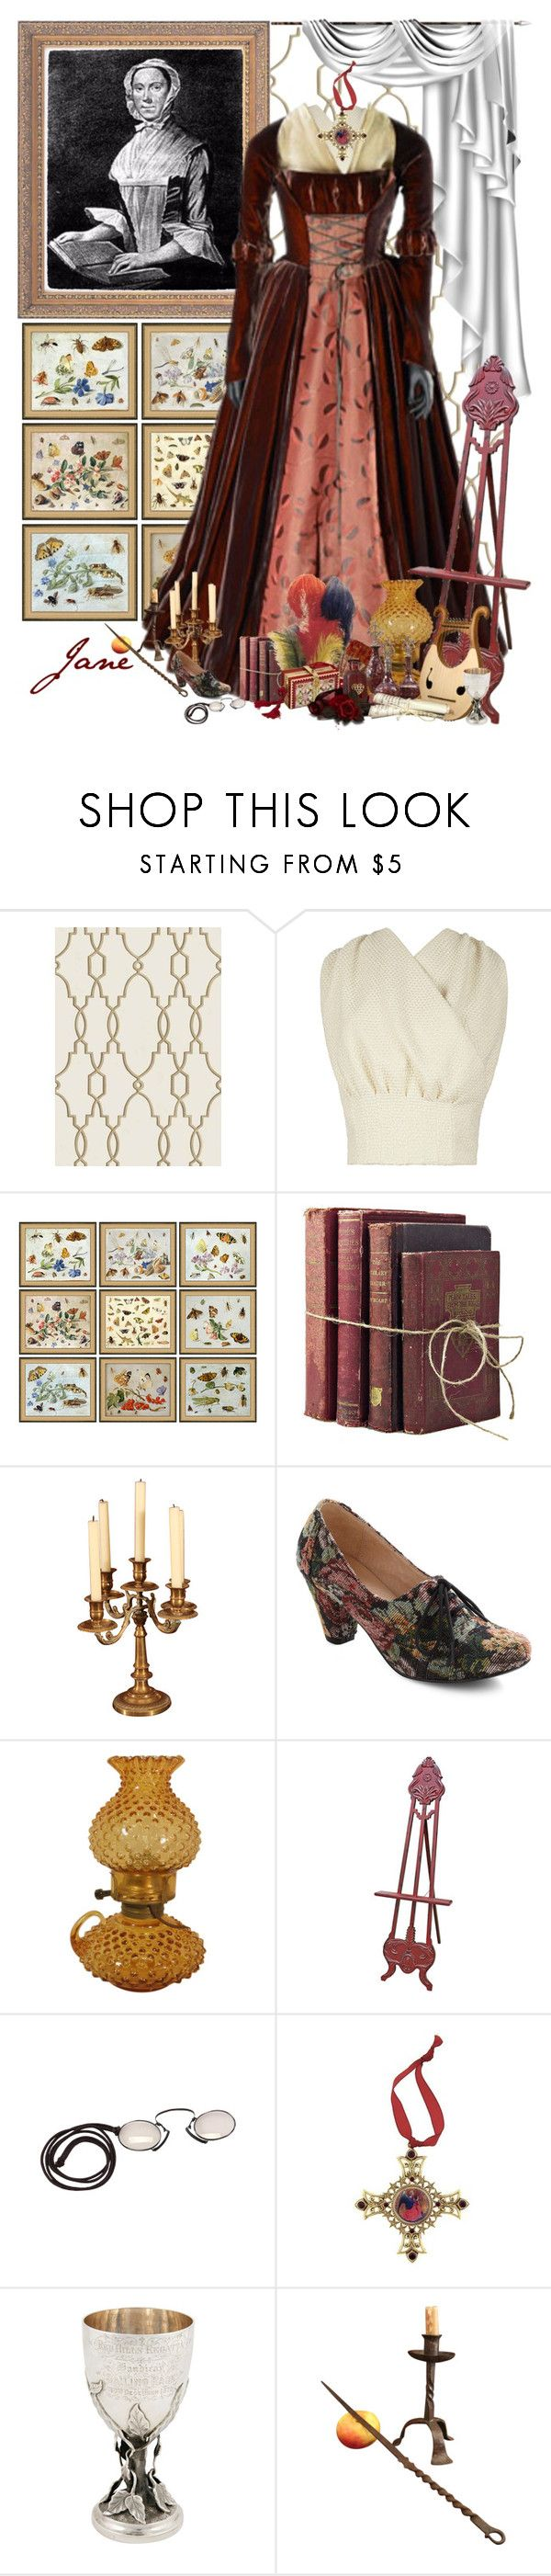 """Jane Rolfe"" by sh0shan ❤ liked on Polyvore featuring Cole & Son, Emilia Wickstead, Soicher Marin, Chelsea Crew, EASEL, The Vatican Library Collection, women's clothing, women's fashion, women and female"